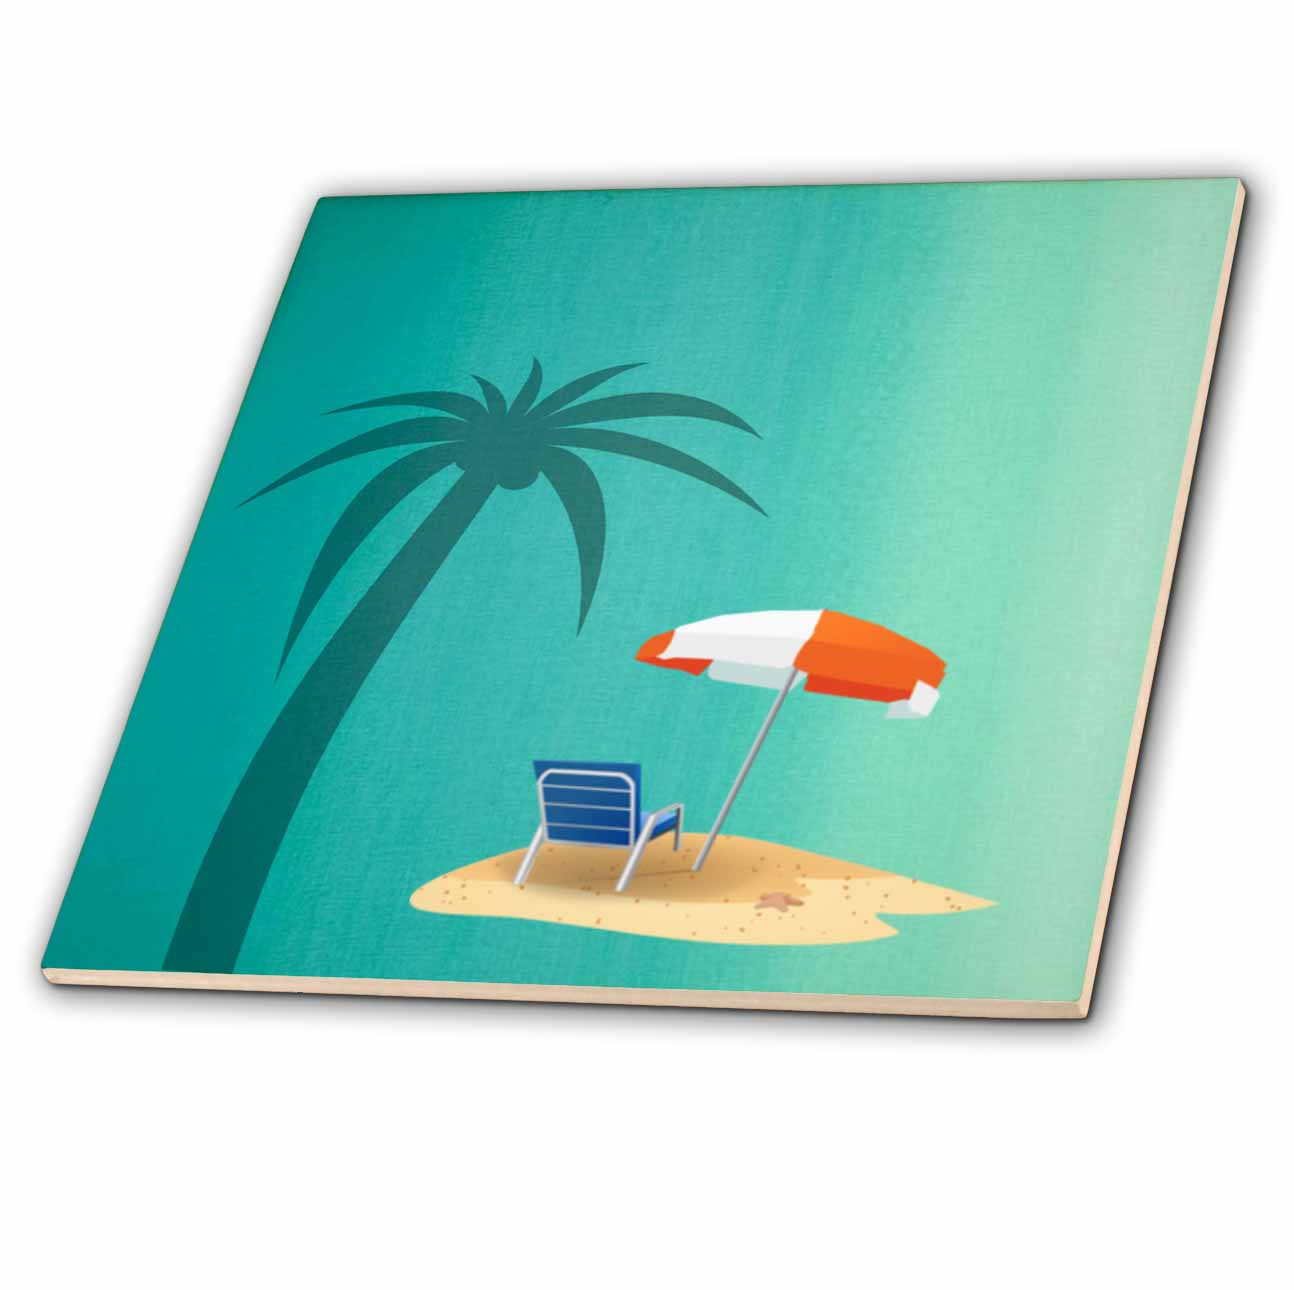 3dRose Print of Palm Tree Beach Chair And Umbrella On Turquoise Ceramic Tile, 4-inch by 3dRose